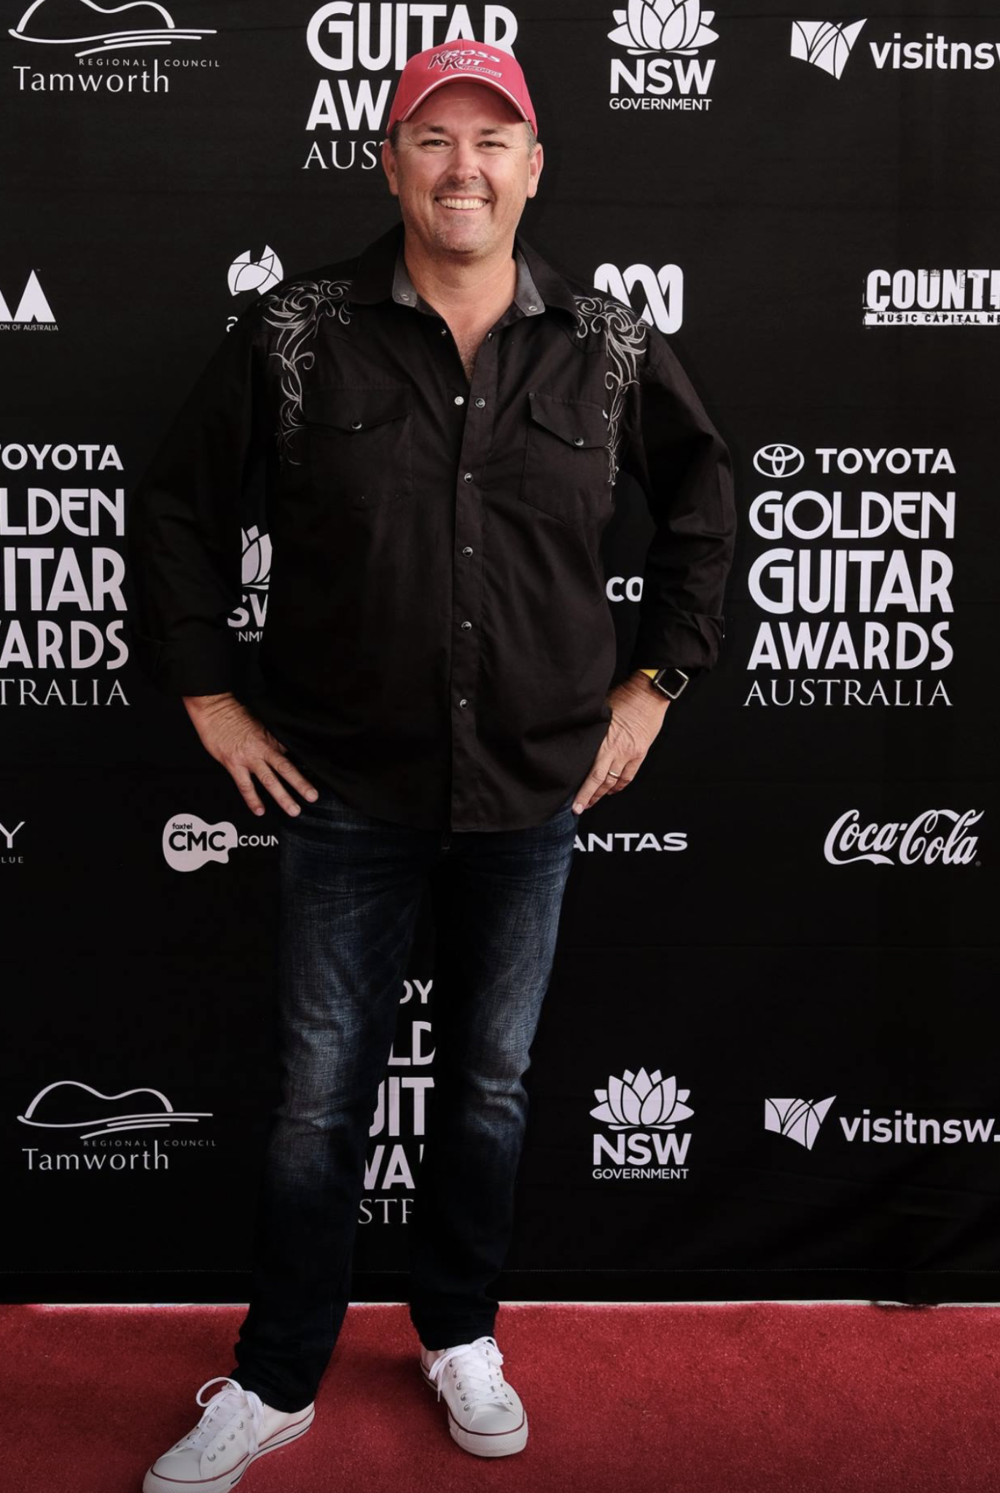 2019 Golden Guitar Awards Australia